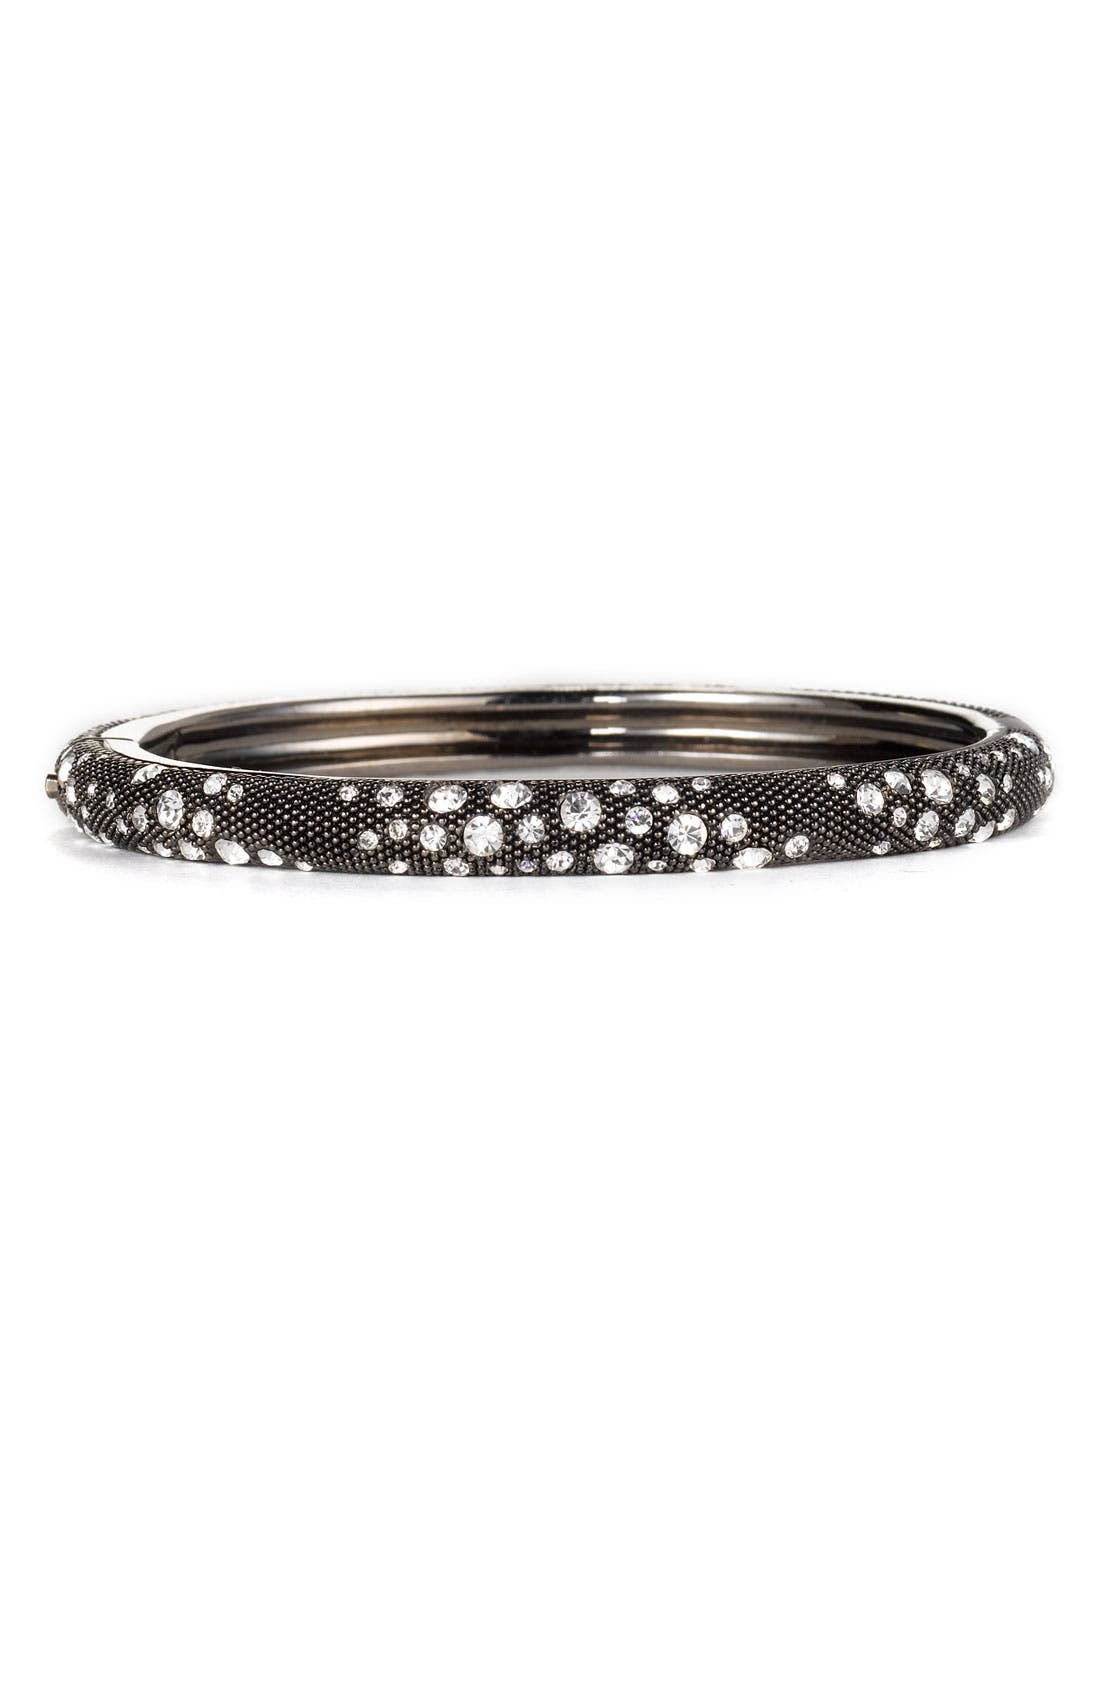 Alternate Image 1 Selected - Nadri Black & White Crystal Hinged Bangle (Nordstrom Exclusive)